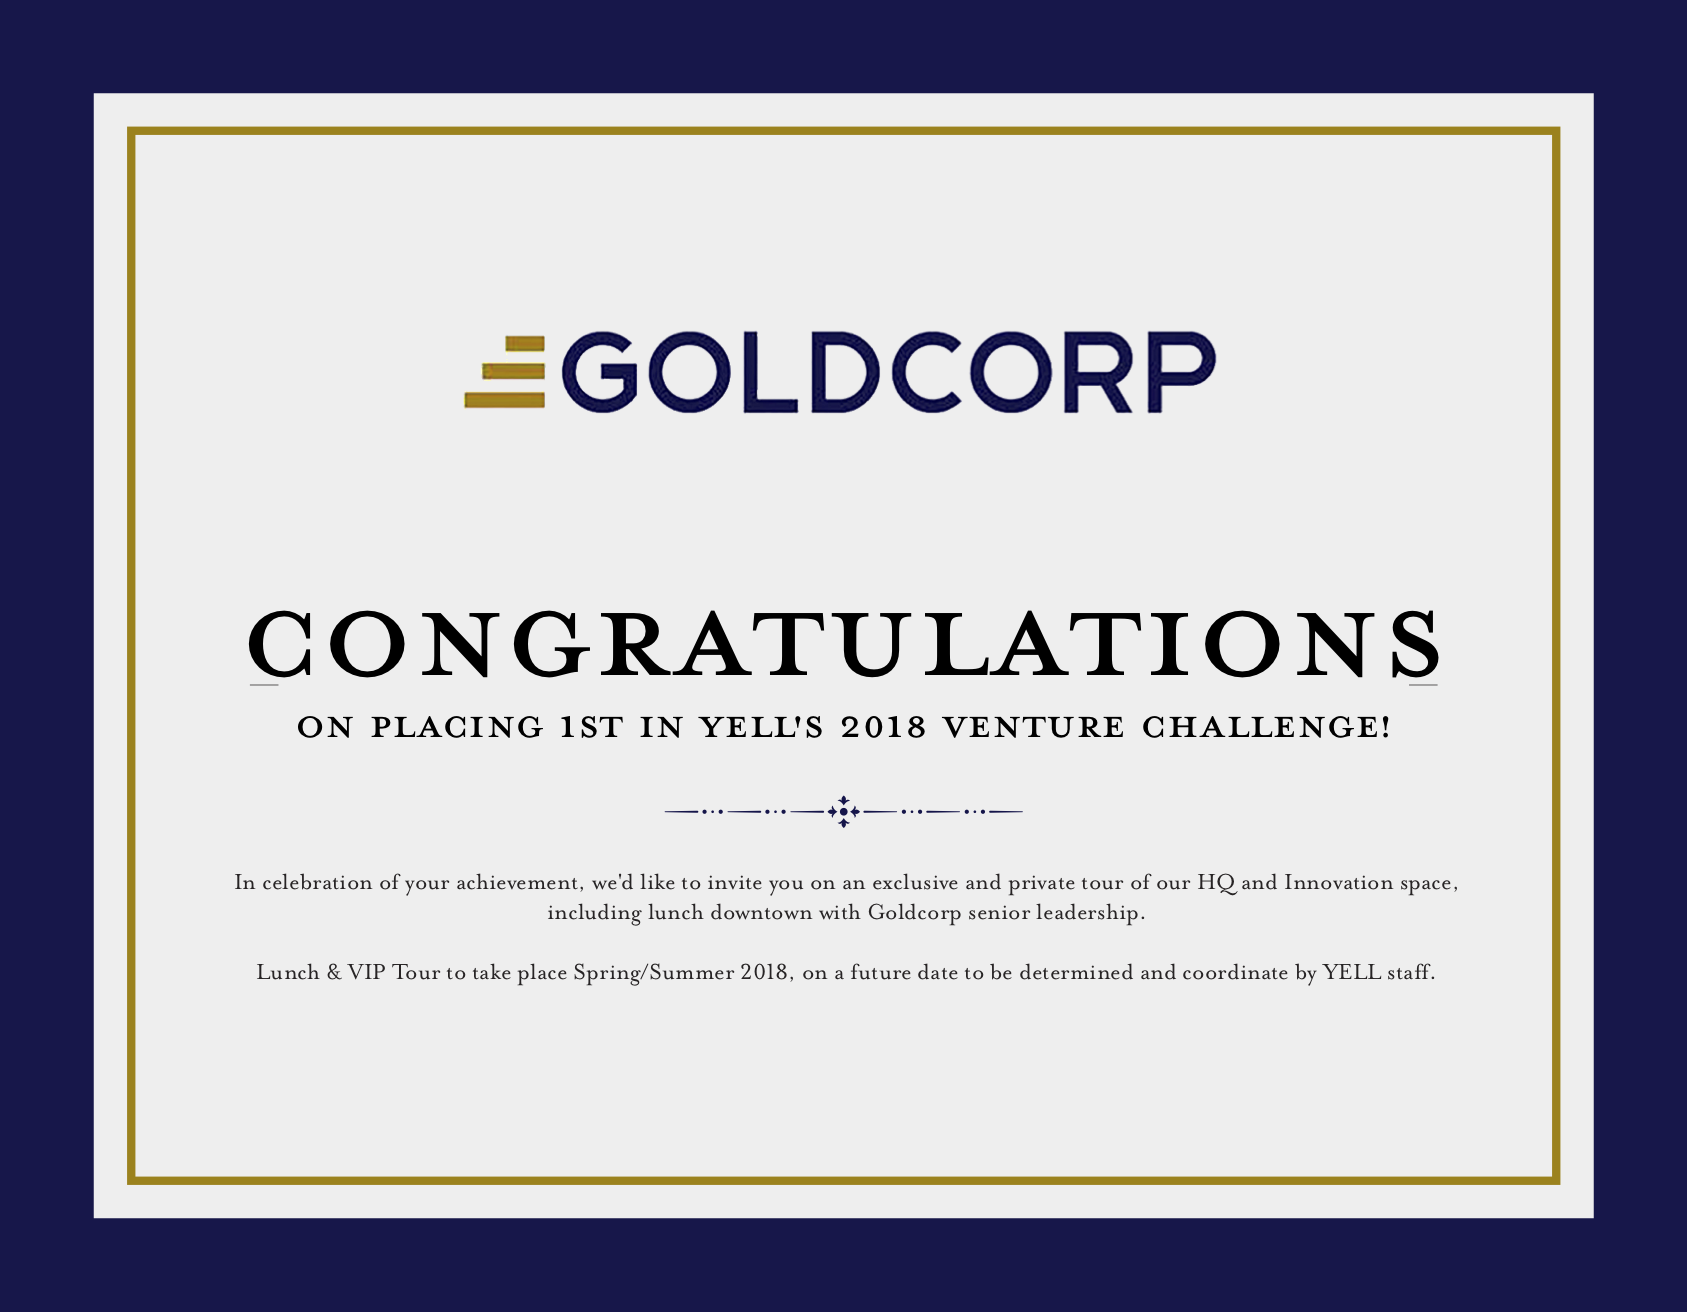 1st Place - Goldcorp invites the winning team on an exclusive and private tour of their HQ and Innovation space, including lunch downtown with Goldcorp senior leadership.